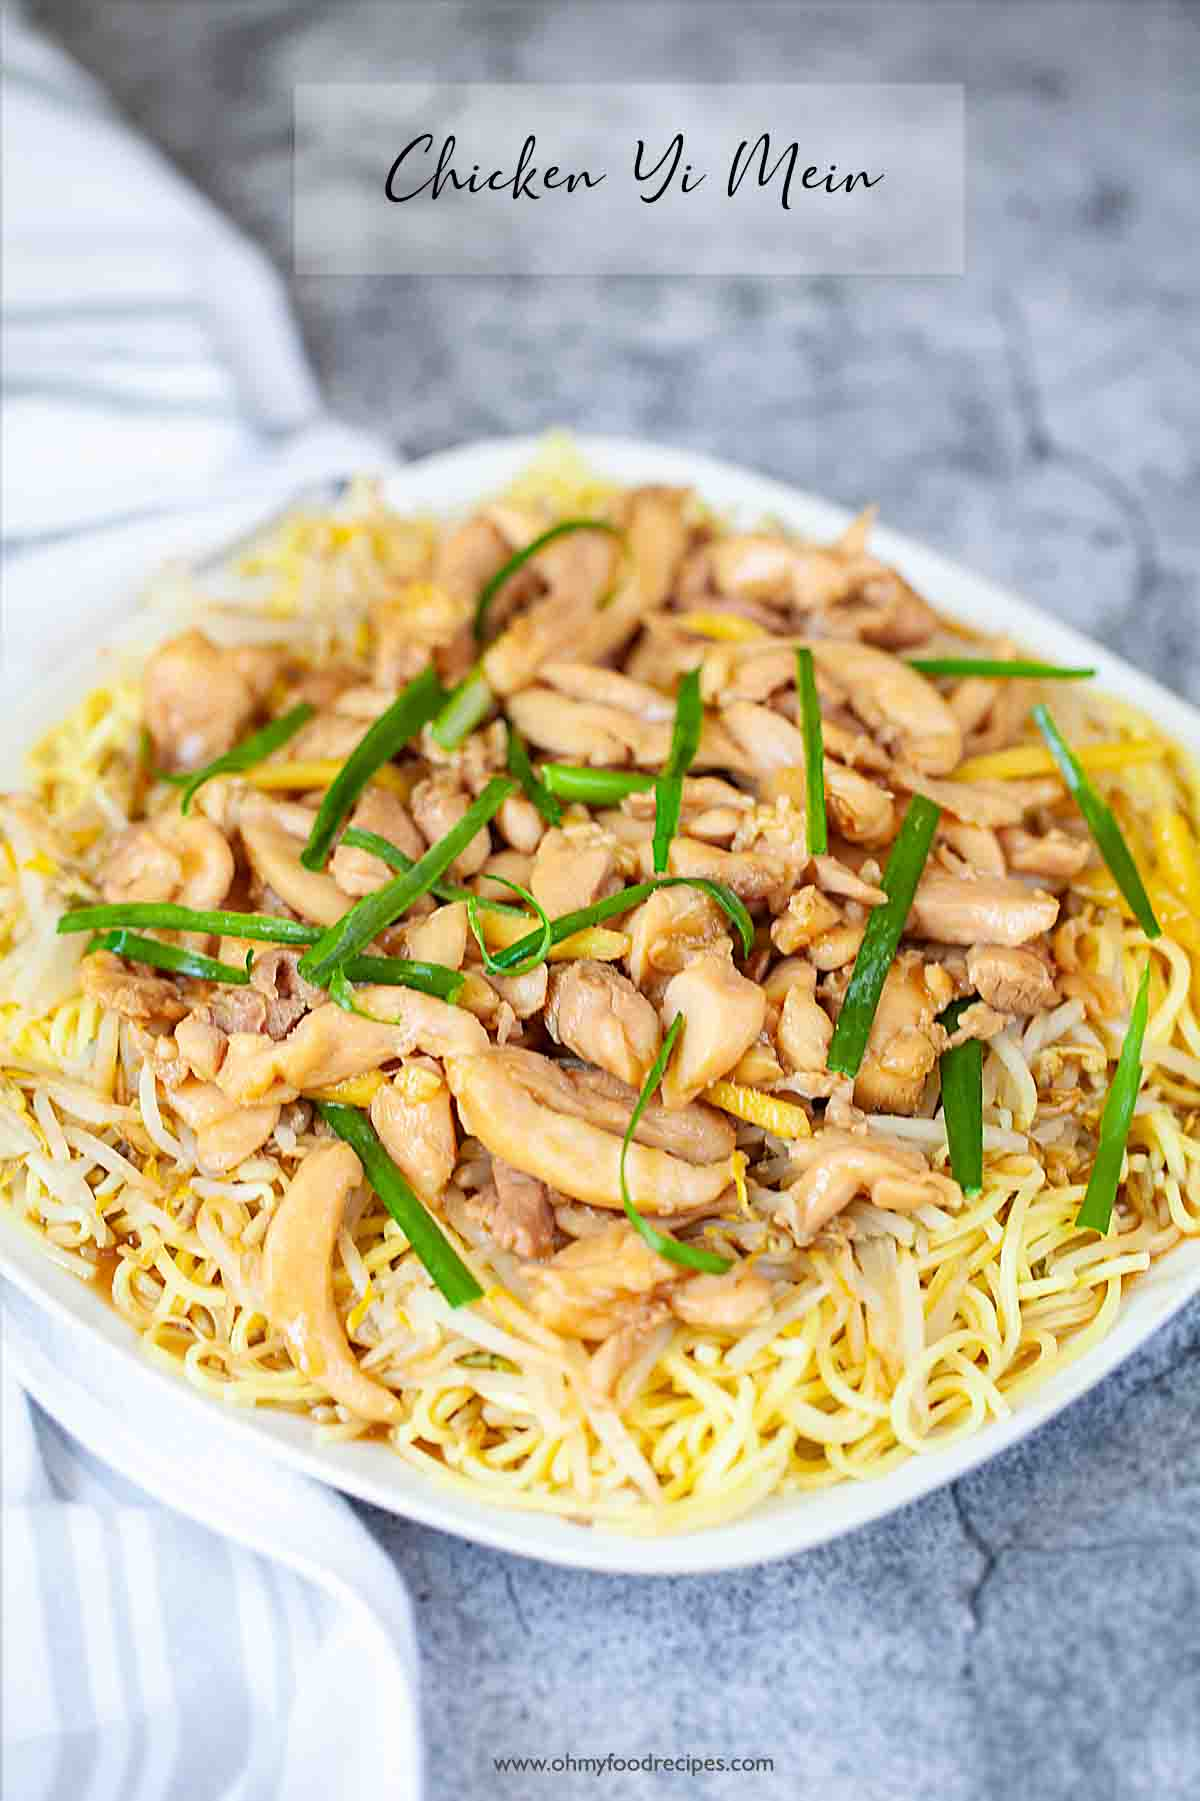 Chicken yi mein noodles on the white plate